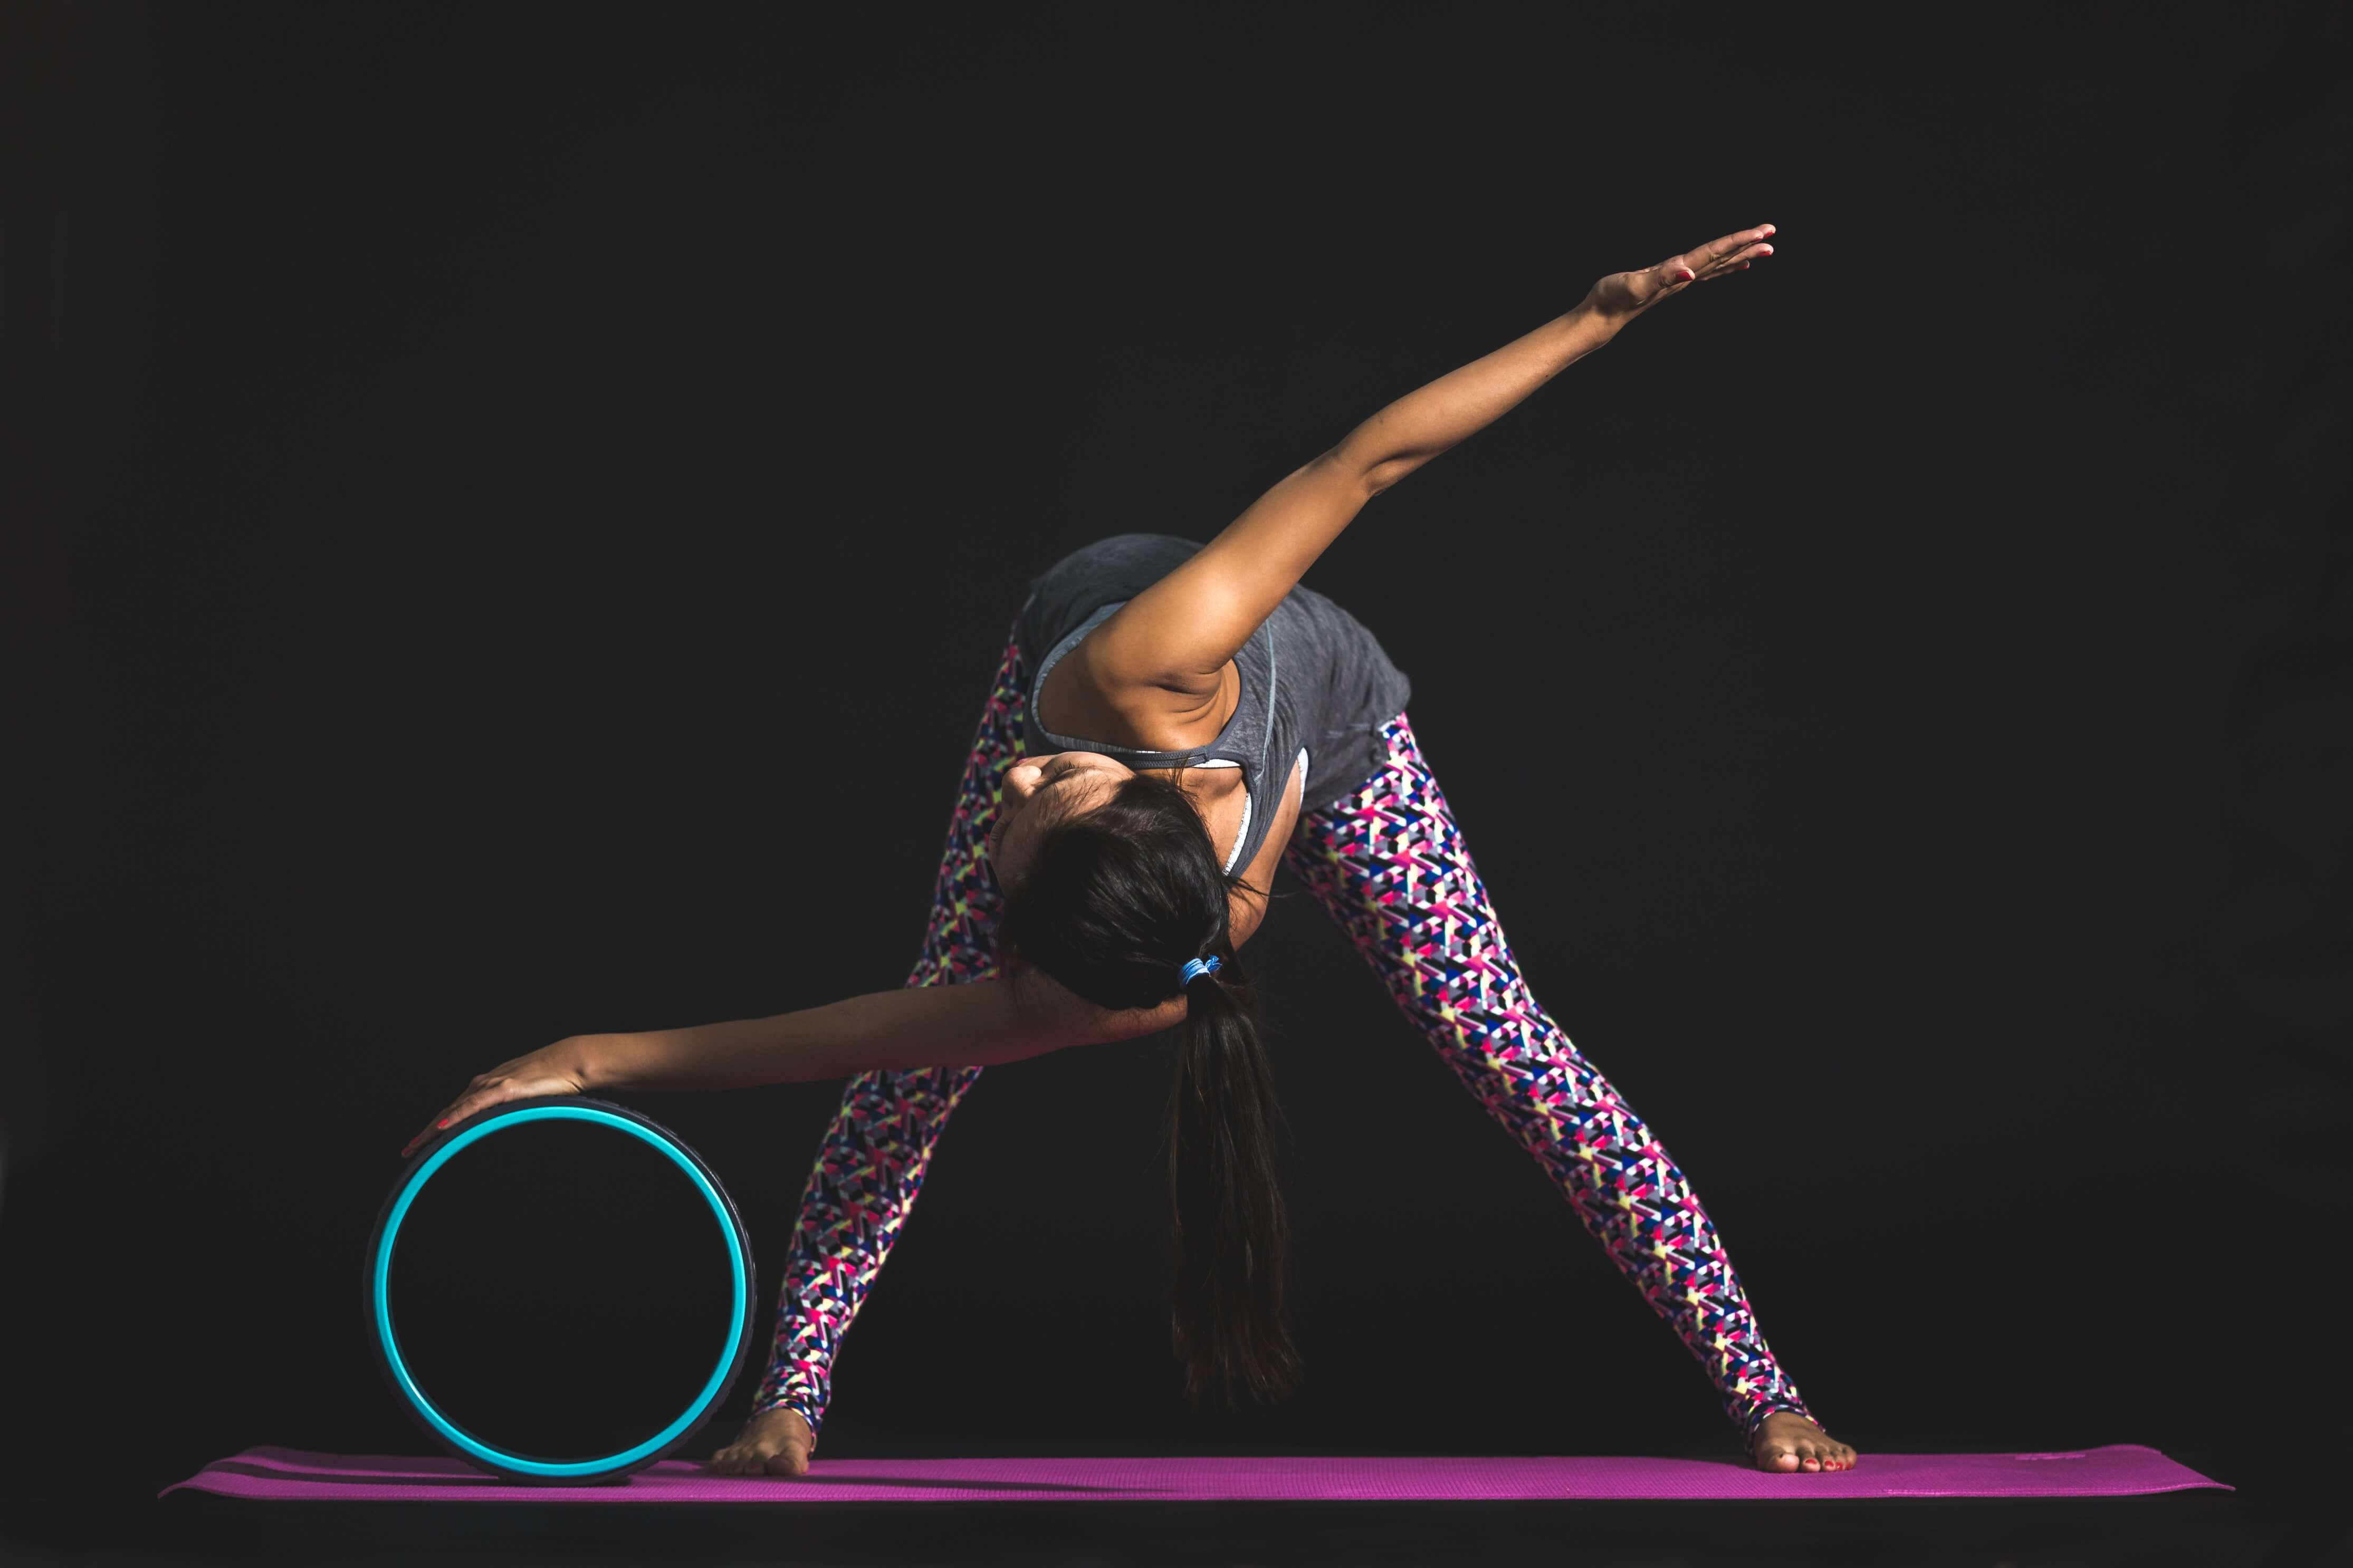 Short Tip of a Yoga Wheel Importance